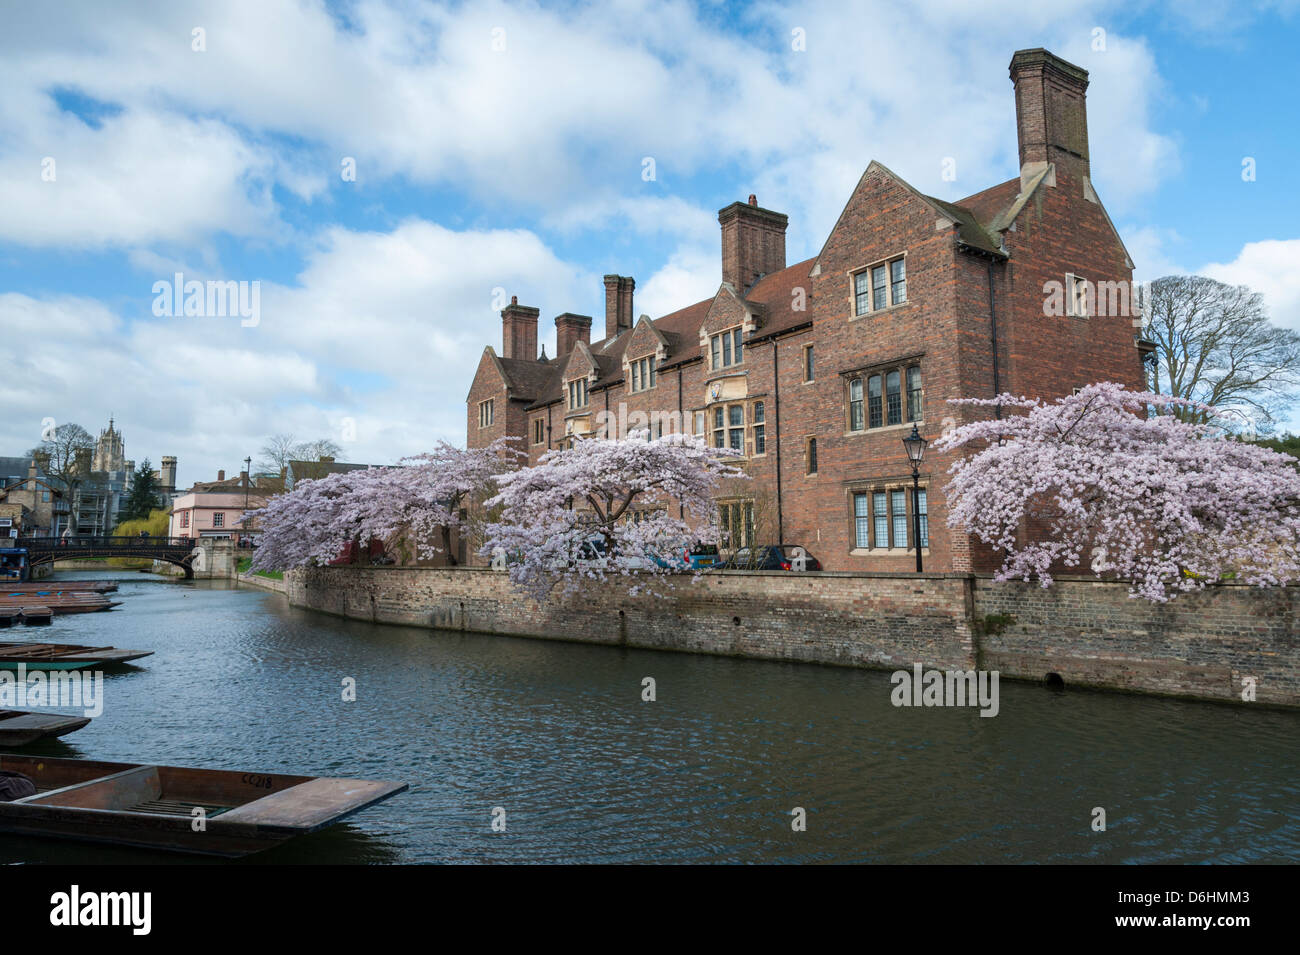 Magdelene College Cambridge UK part of Cambridge University by the River Cam with trees in pink blossom in the spring - Stock Image